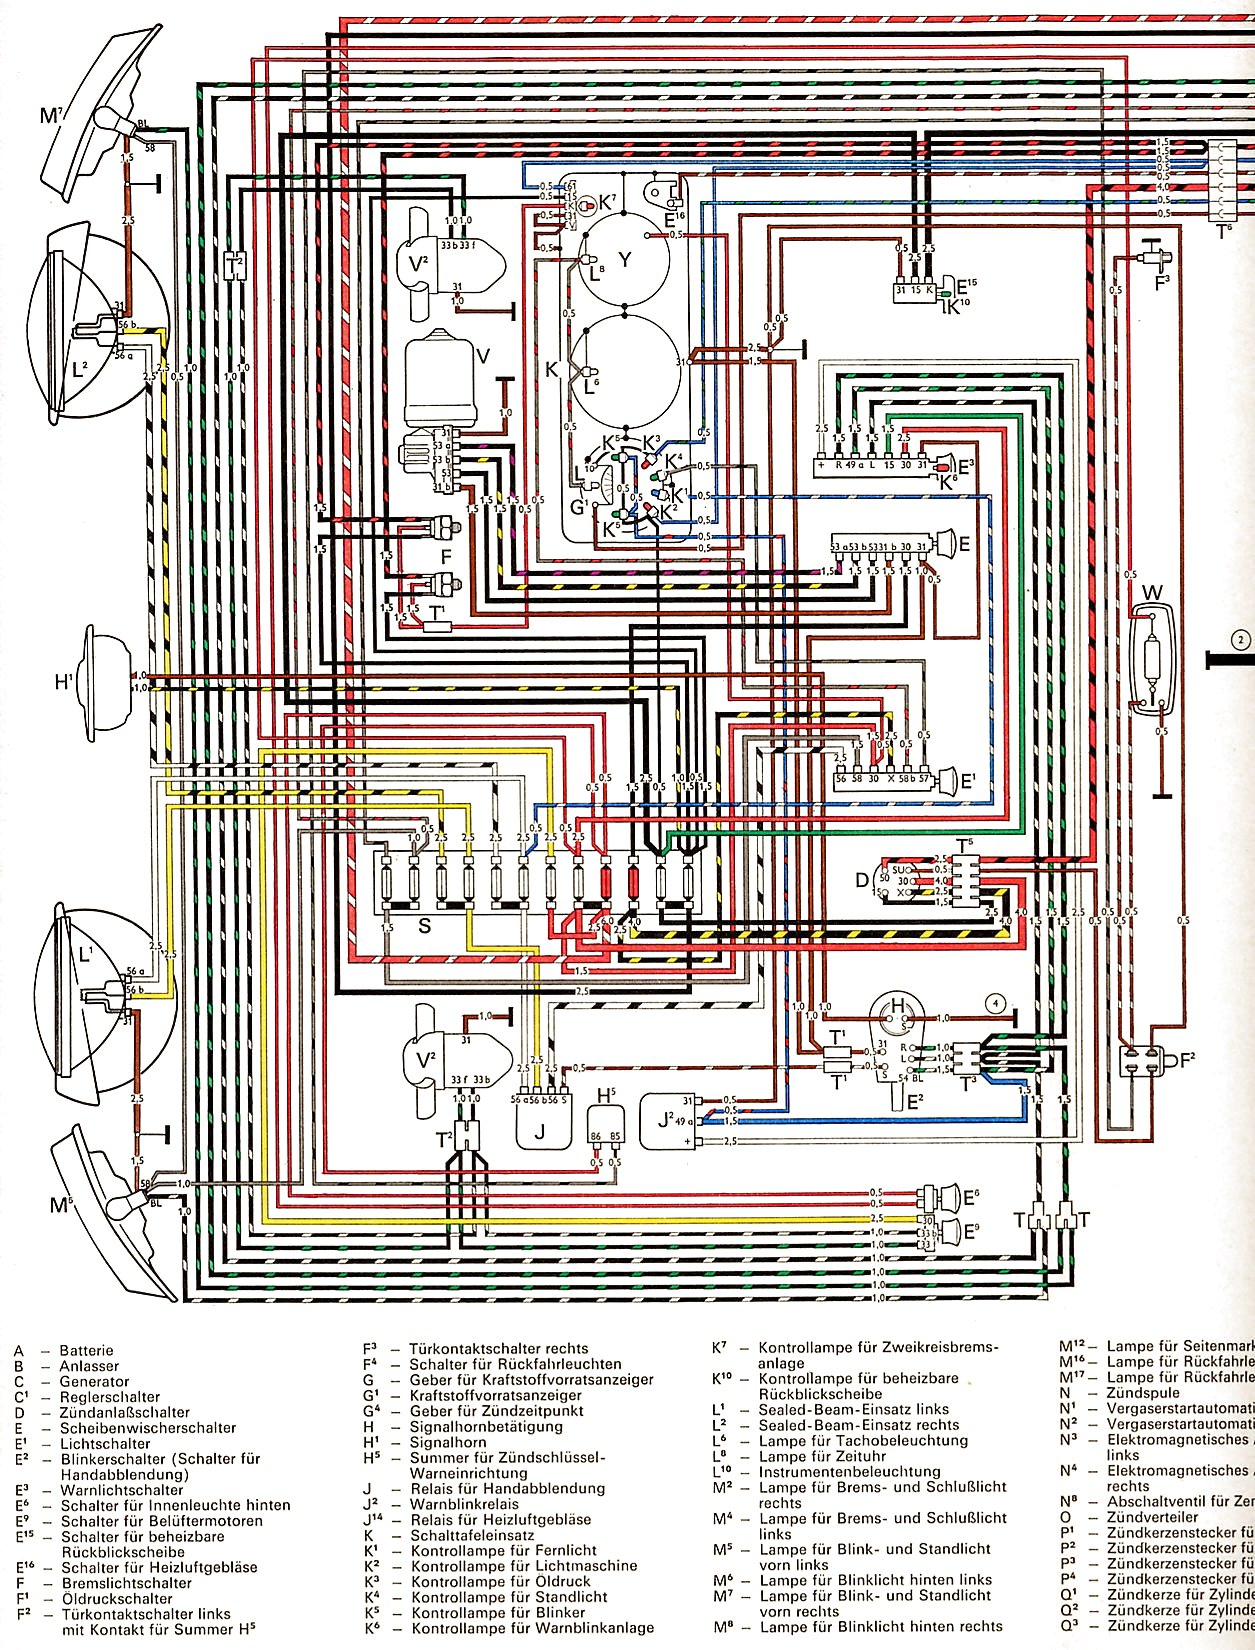 Vw Bus And Other Wiring Diagrams Volkswagen 2 0 Engine Diagram 1972 Usa De Y 1